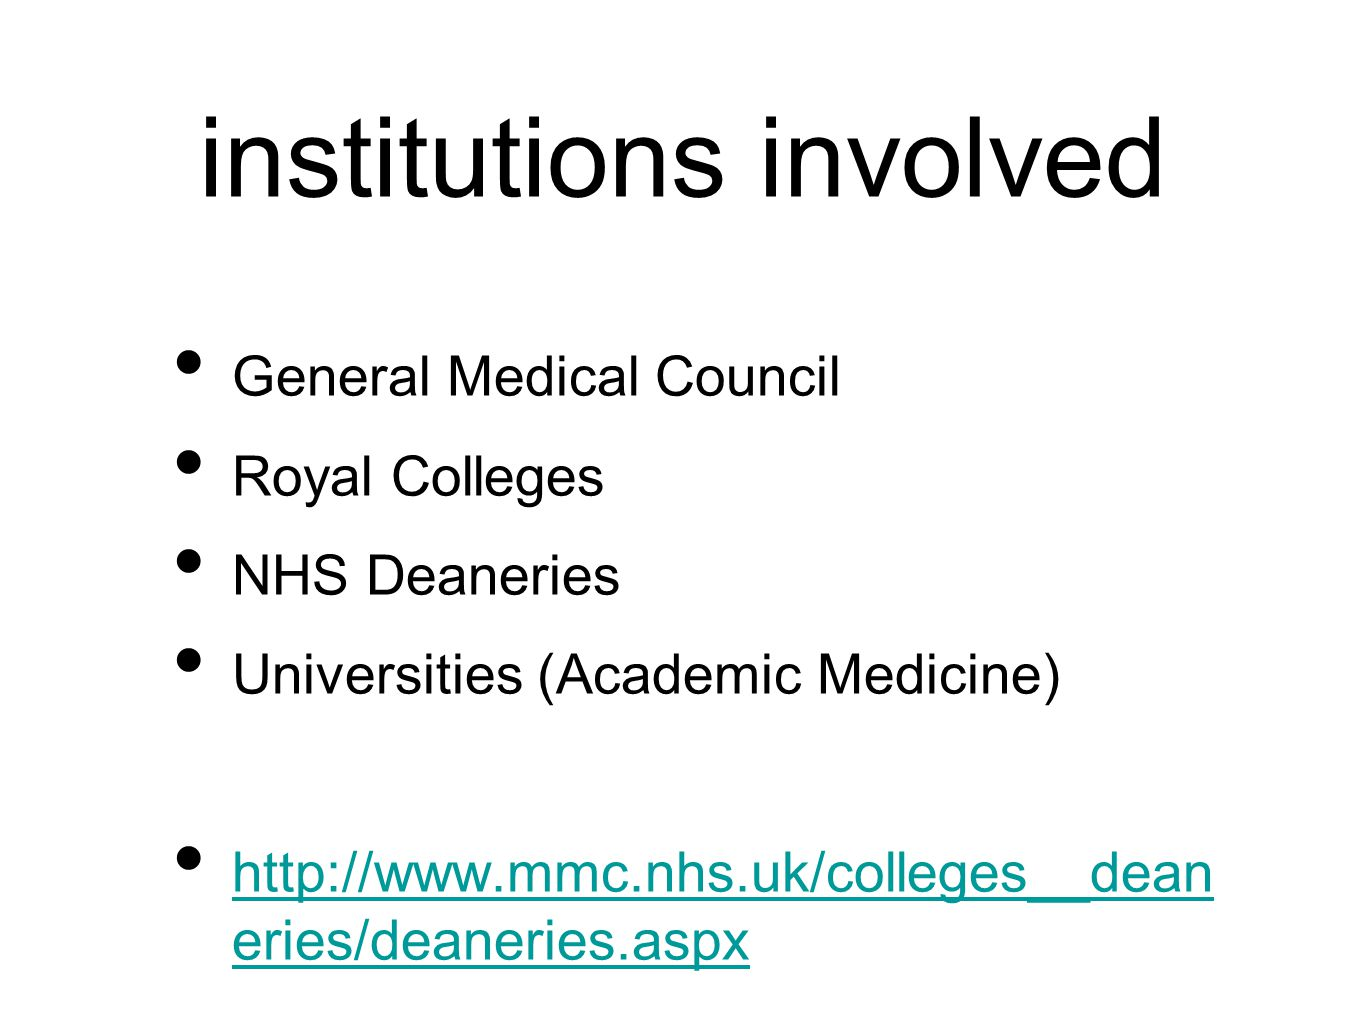 institutions involved General Medical Council Royal Colleges NHS Deaneries Universities (Academic Medicine) http://www.mmc.nhs.uk/colleges__dean eries/deaneries.aspx http://www.mmc.nhs.uk/colleges__dean eries/deaneries.aspx